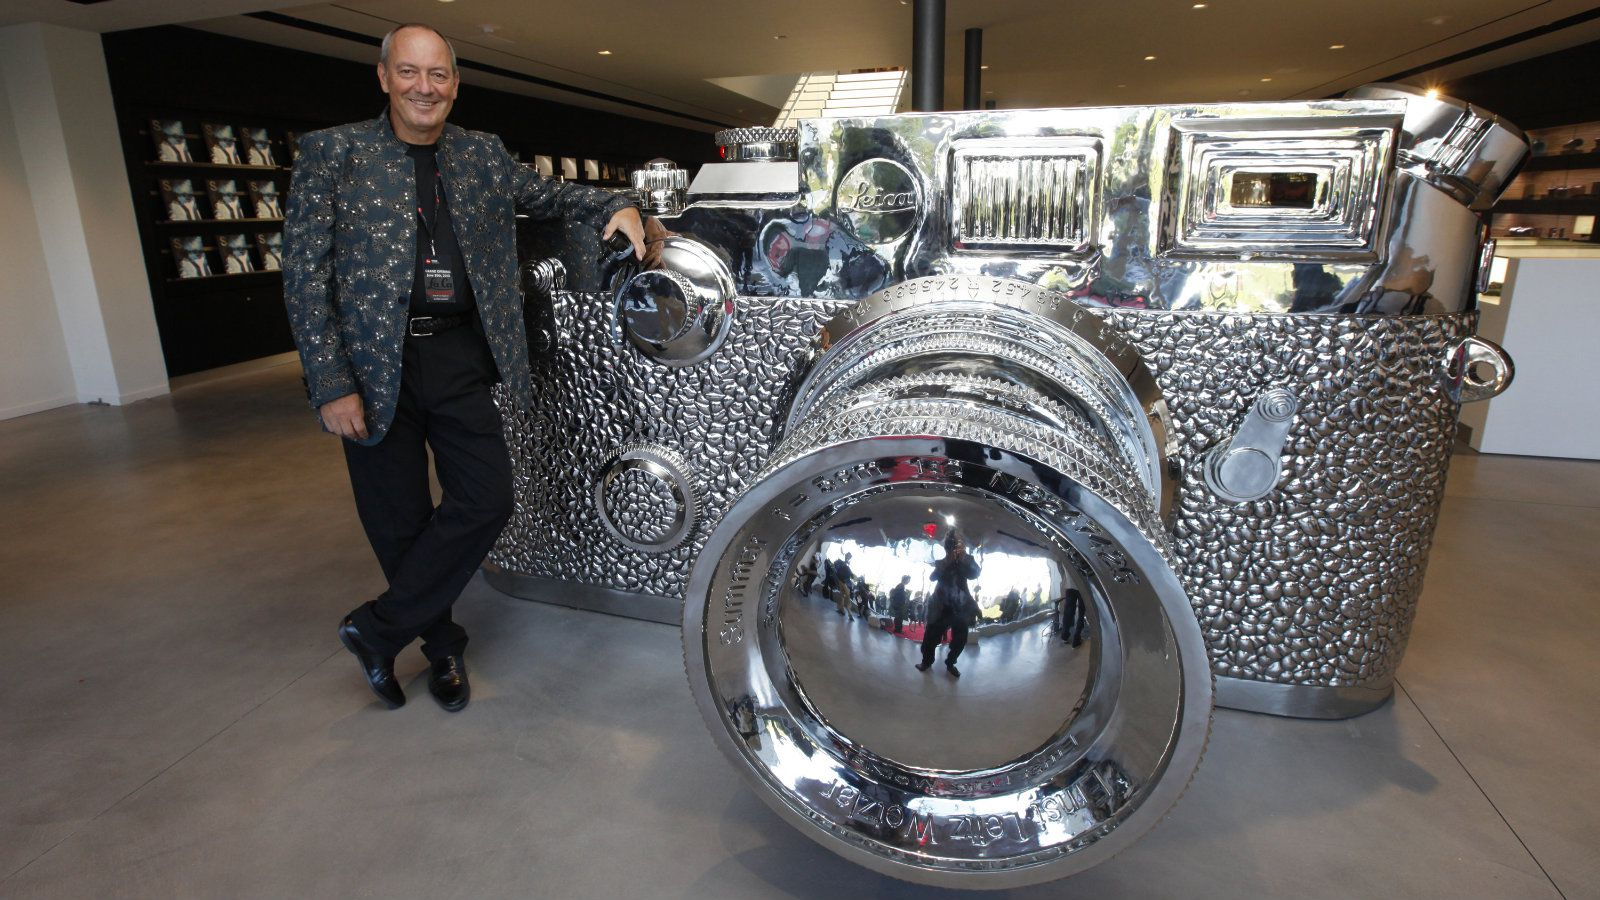 """Chief Executive Officer of Leica Alfred Schopf poses next to a sculpture of a large silver Leica camera by Chinese artist Liao Yibai titled """"Fake Leica,"""" at the launch of the Leica Store Los Angeles in Los Angeles June 20, 2013. The store features three floors of a gallery, retail space and library and the company's high-end still cameras. Picture taken June 20, 2013. REUTERS/Fred Prouser (UNITED STATES - Tags: ENTERTAINMENT SOCIETY)"""